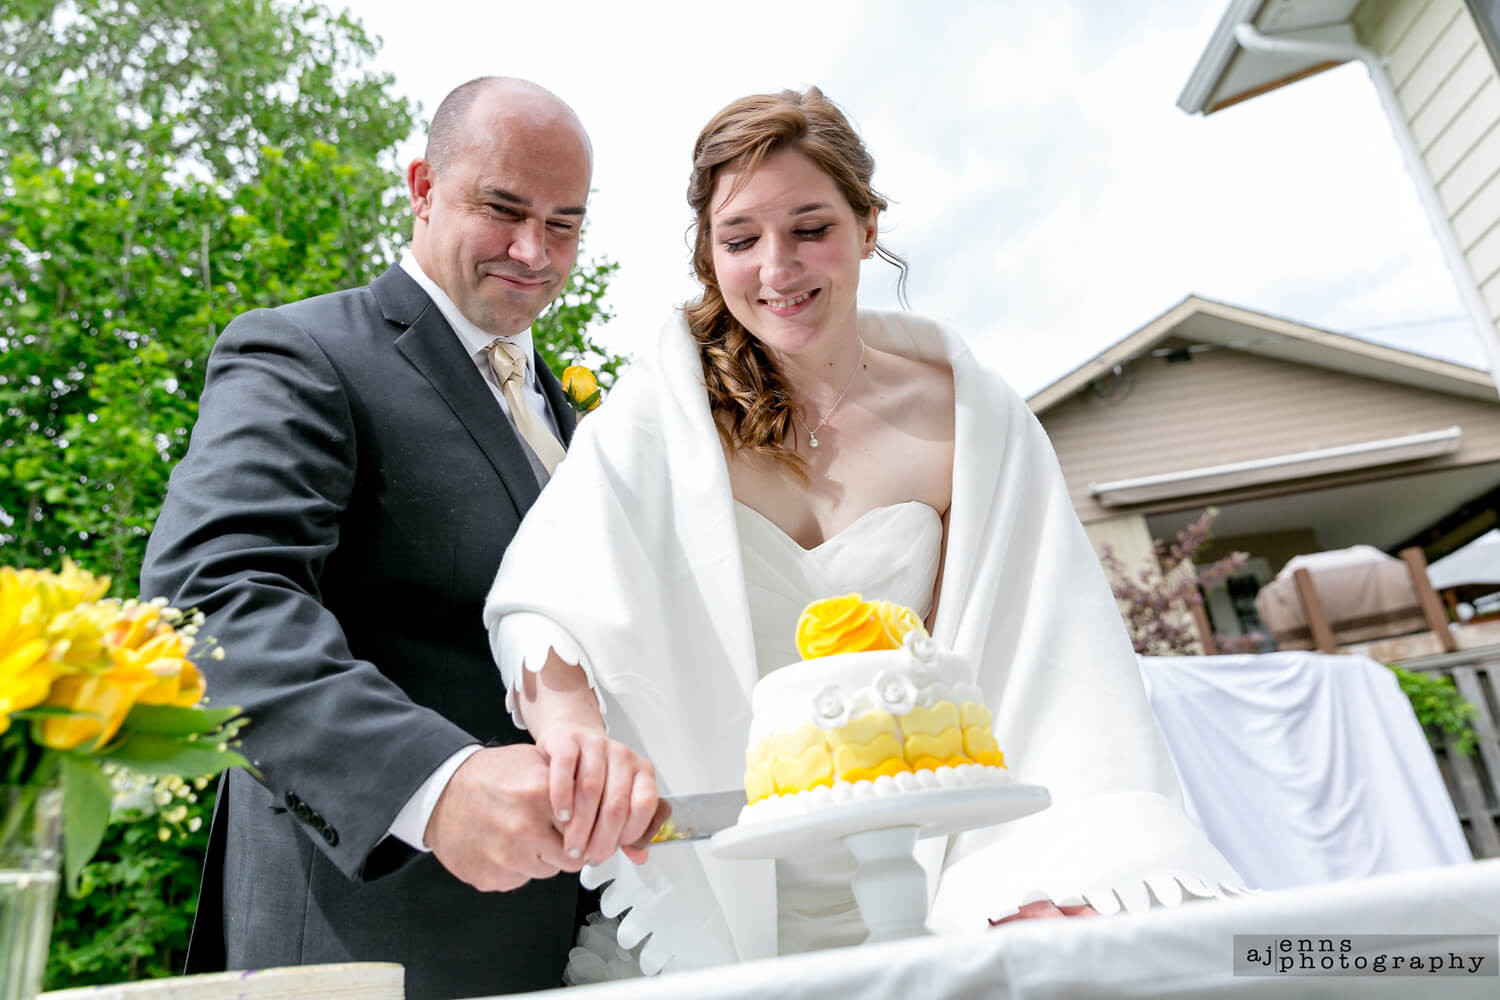 Bride and groom cutting the yellow wedding cake